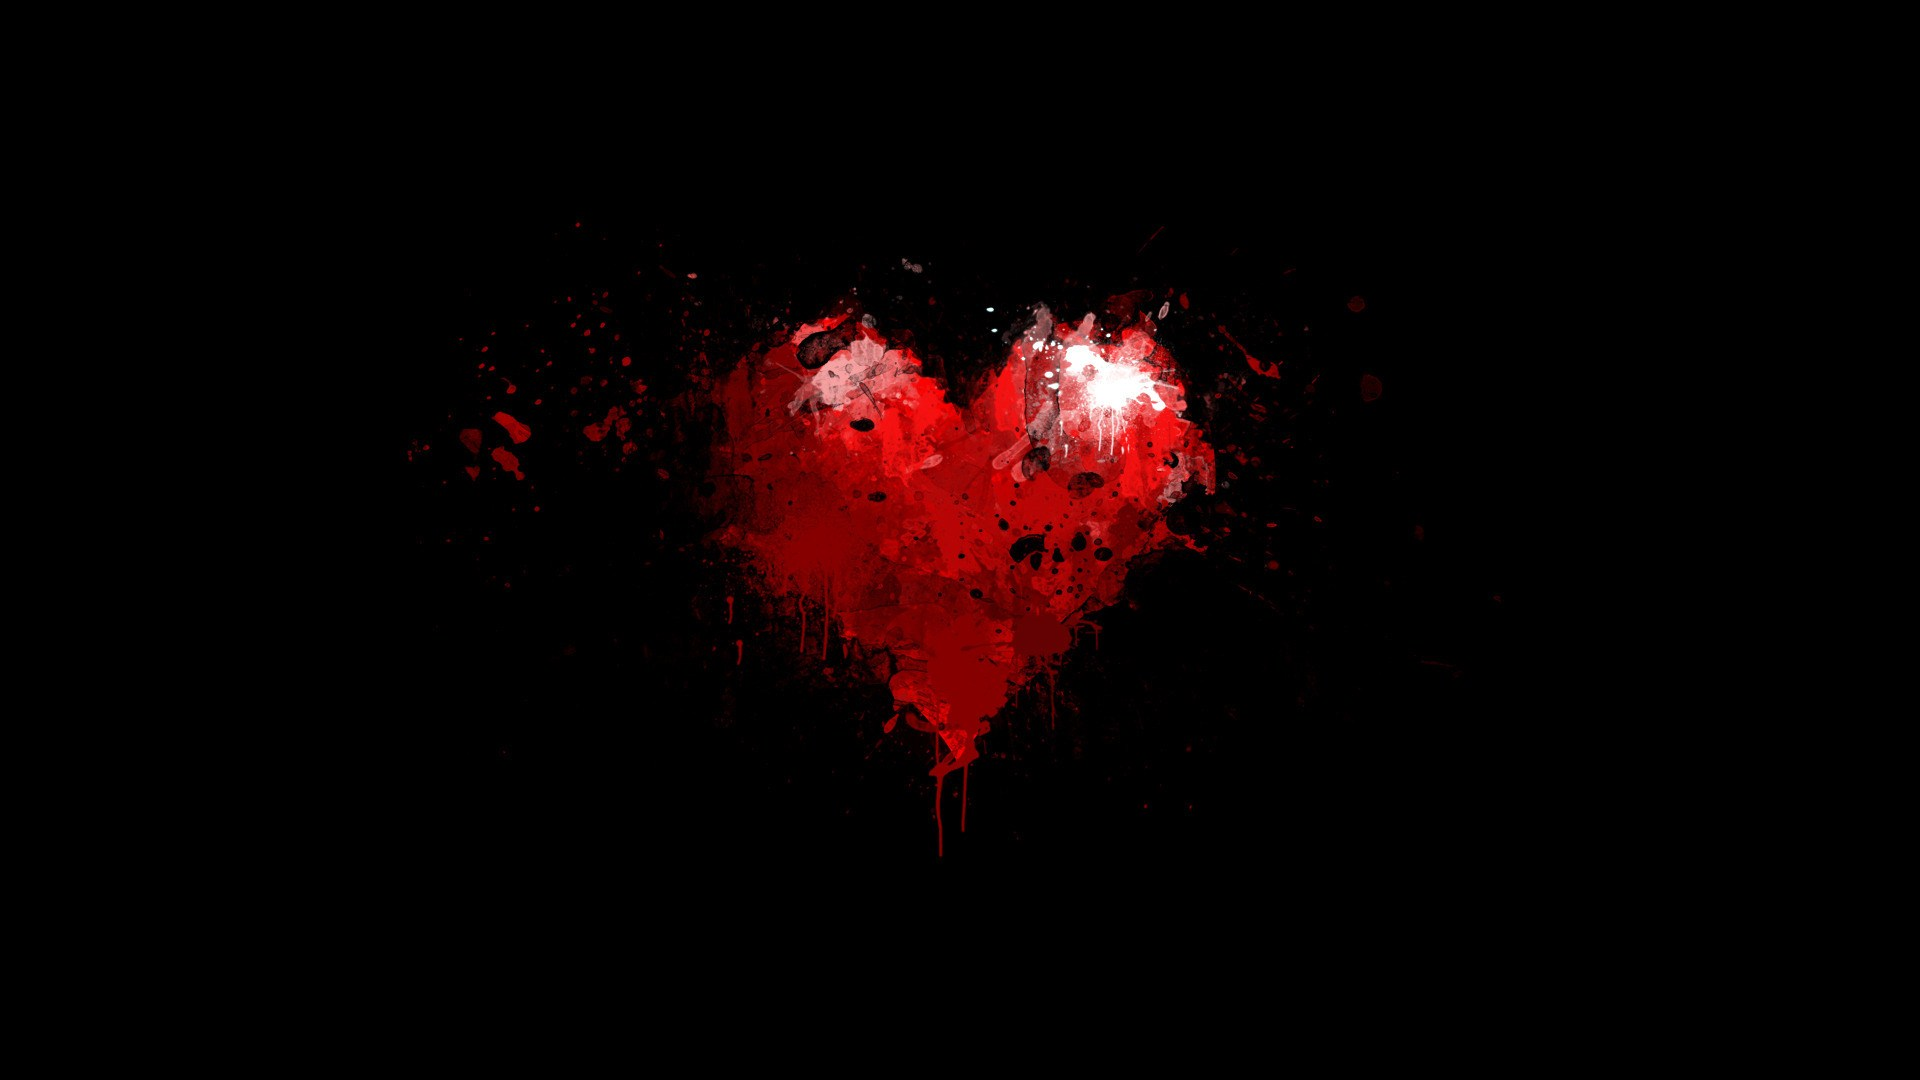 Minimalism Black Red Heart Paint Splash Drop Wonderful HD Wallpaper is a awesome hd photography. Free to upload, share the high definition photos.